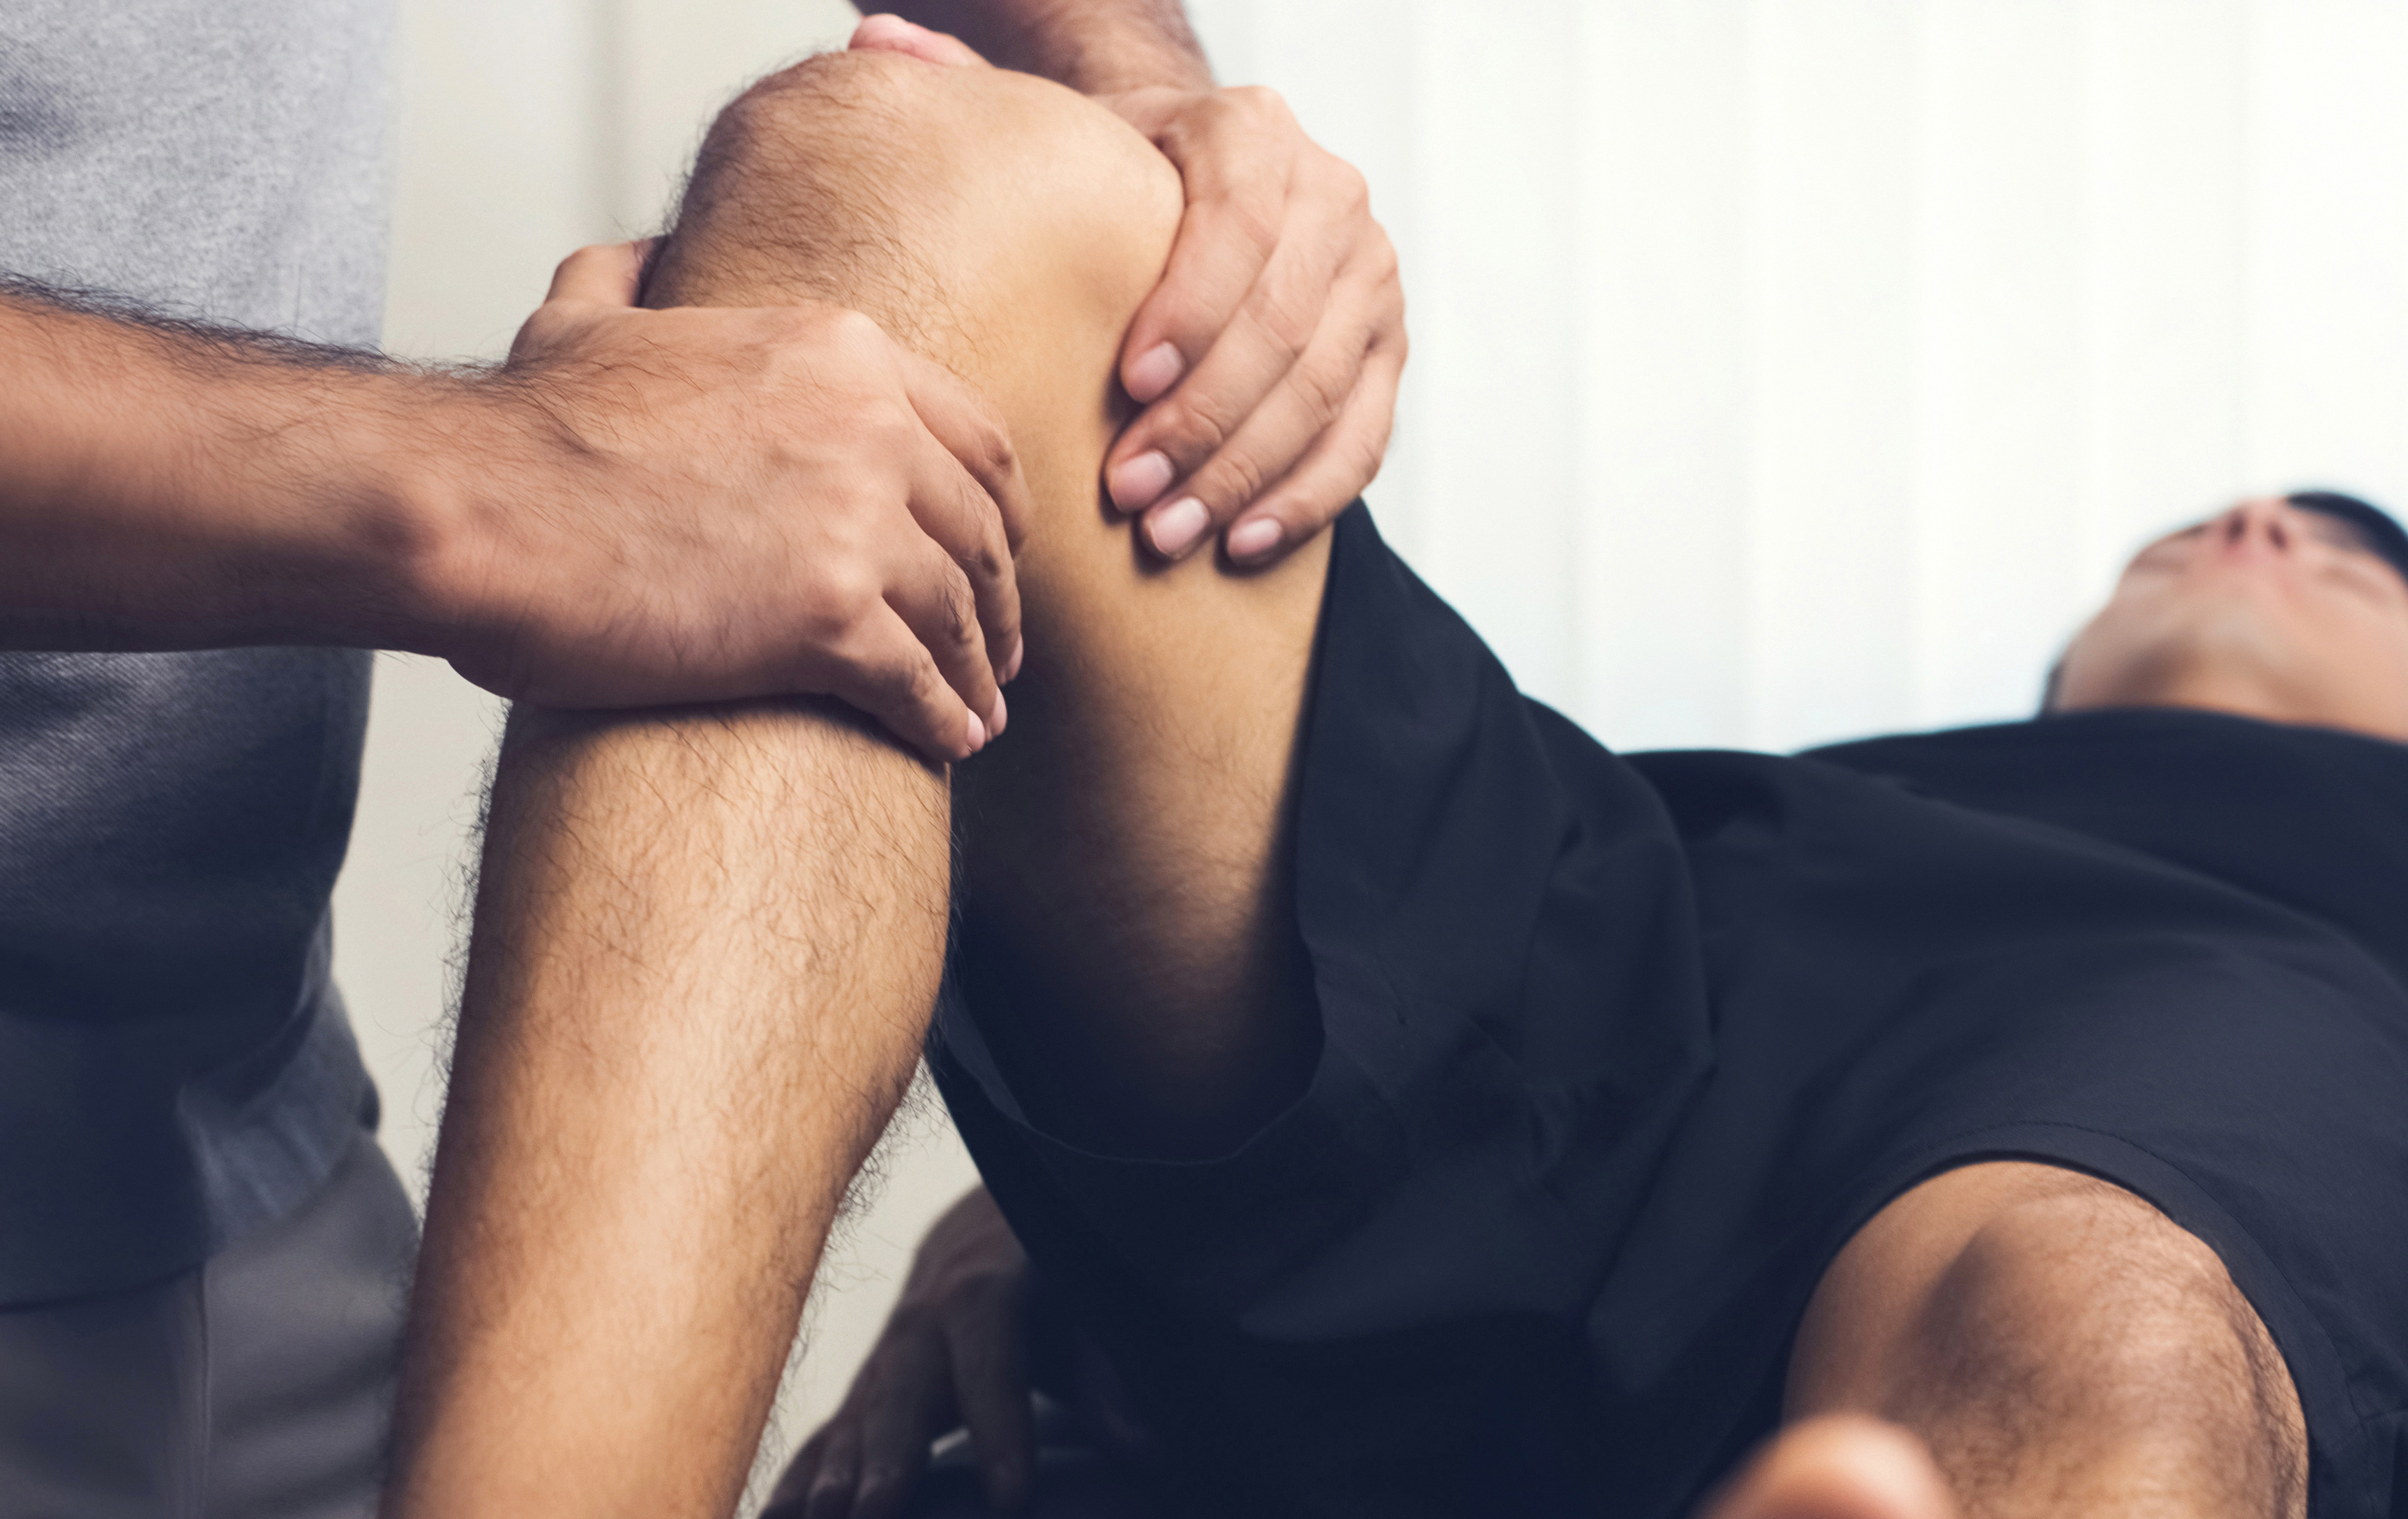 Mark Plaatjes physical therapy